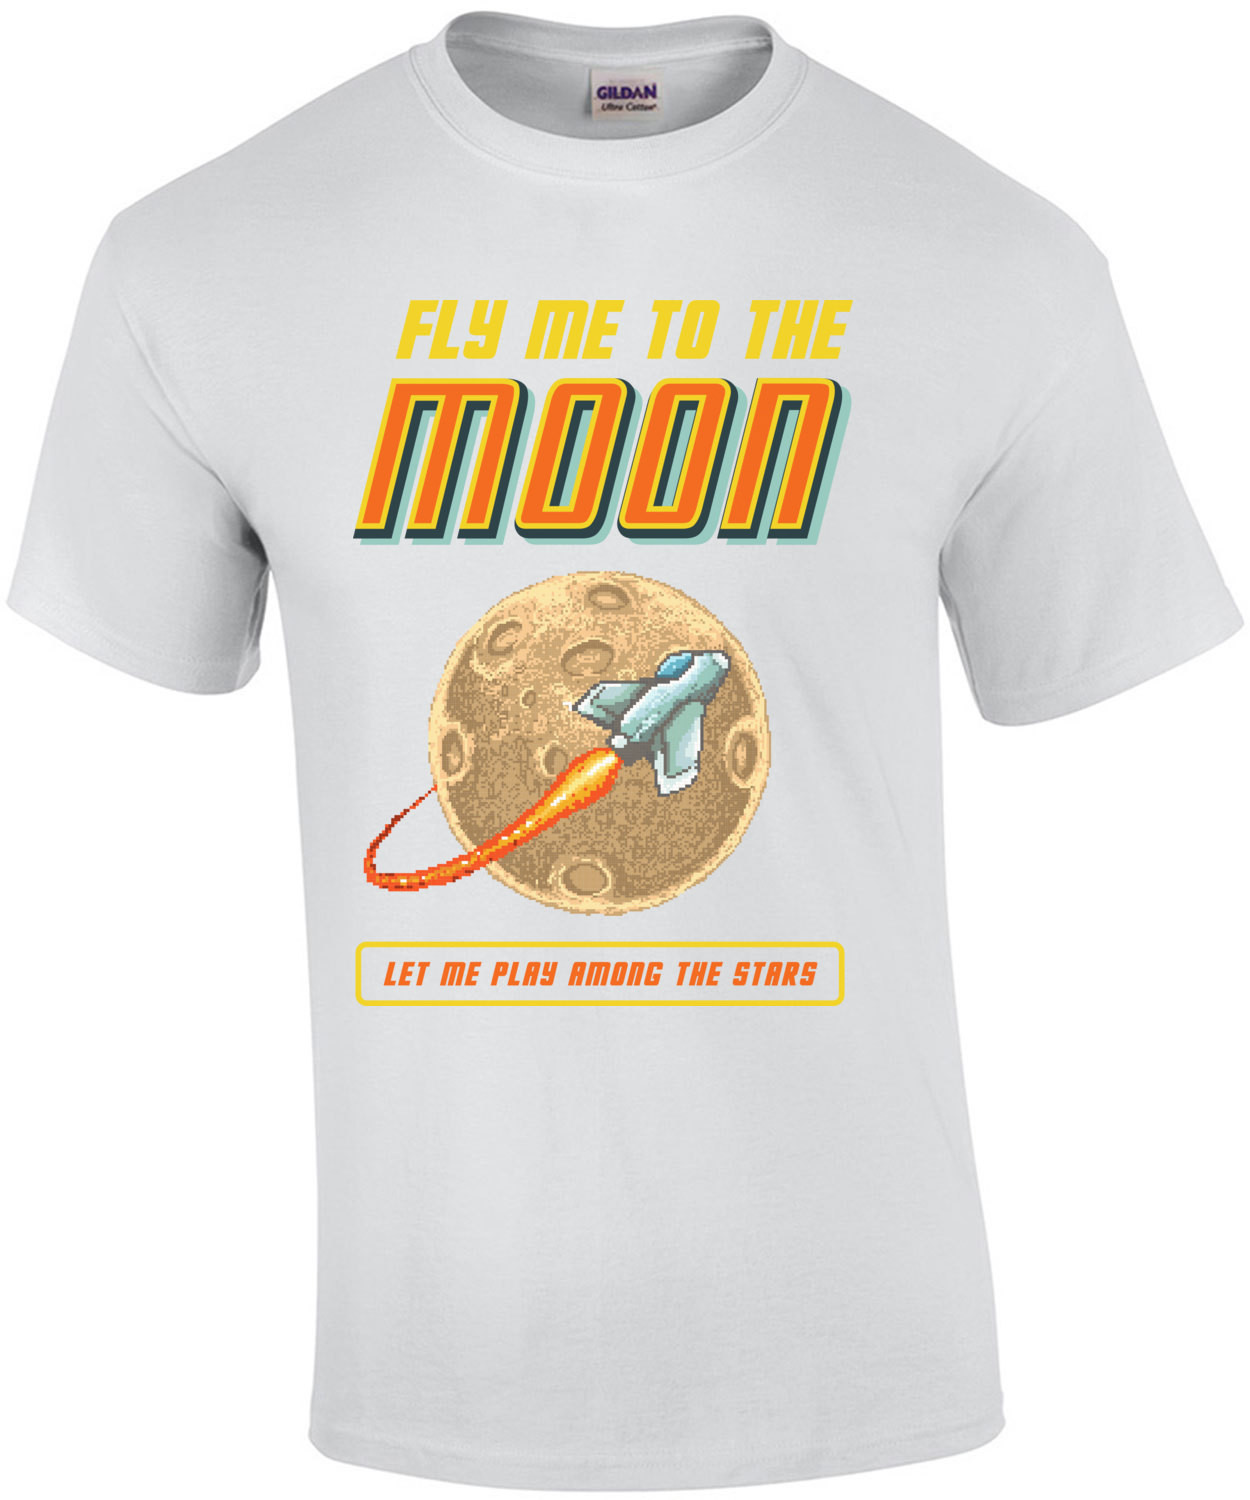 Fly Me To The Moon Let Me Play Among The Stars T-Shirt